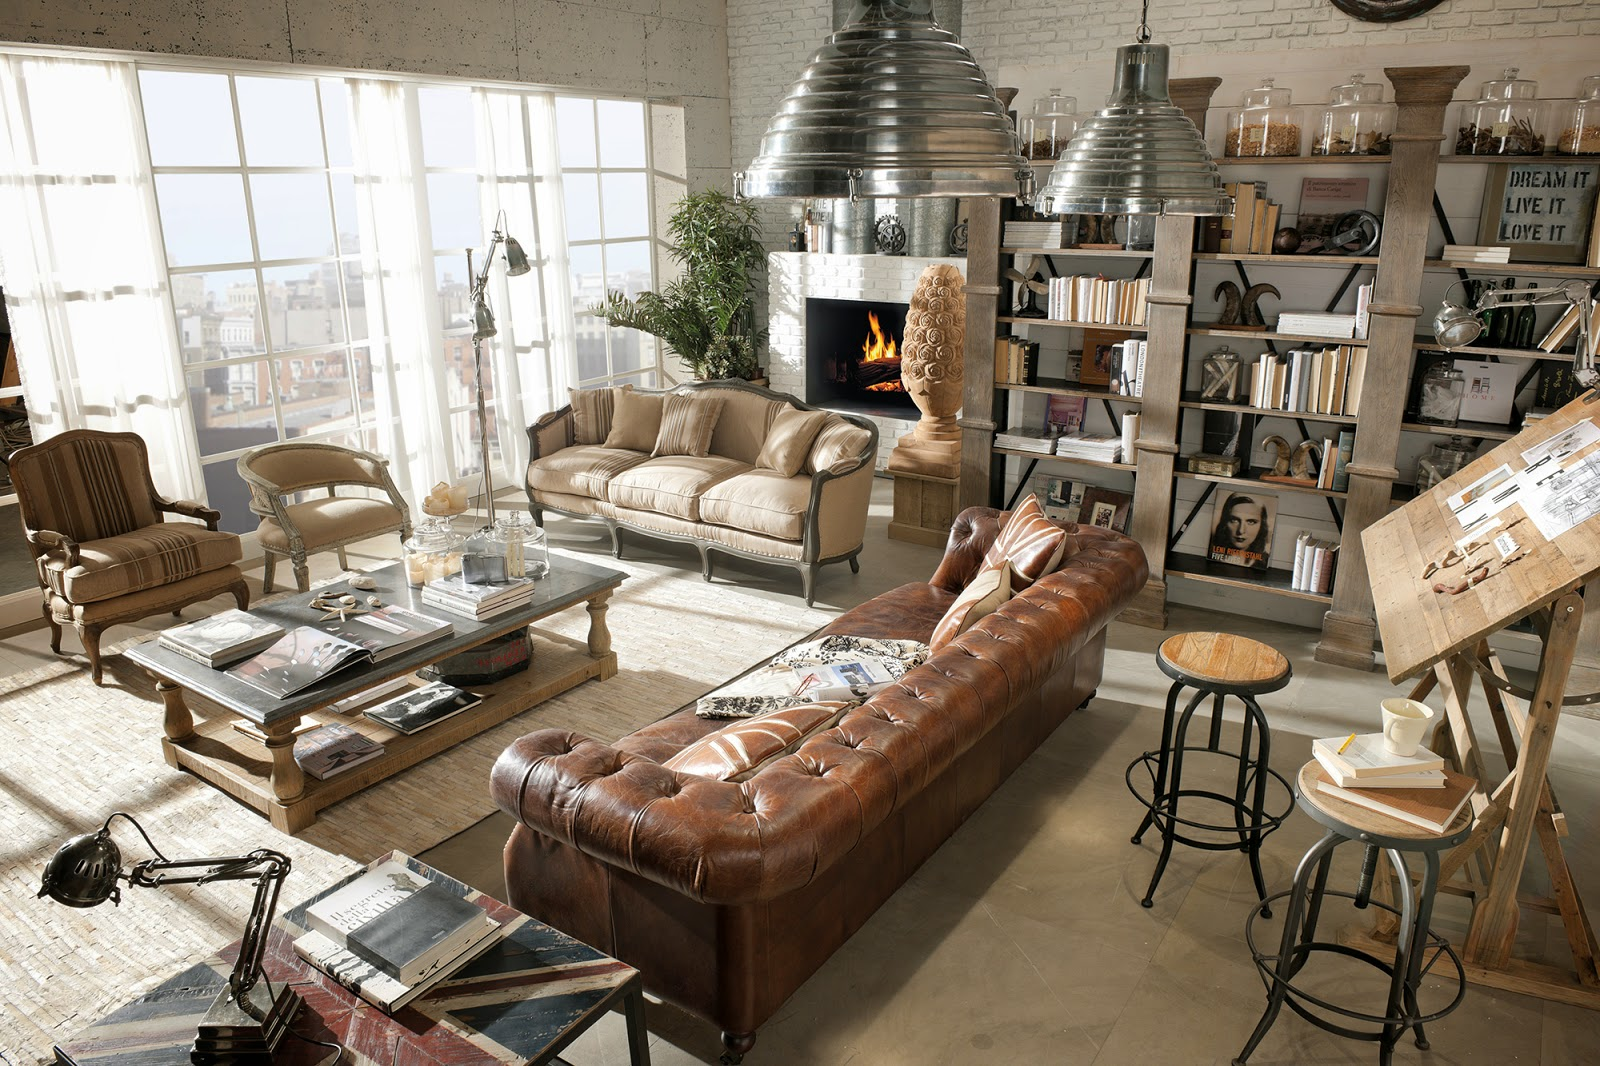 Deco dialma brown y su decoraci n vintage industrial for Decoracion retro industrial